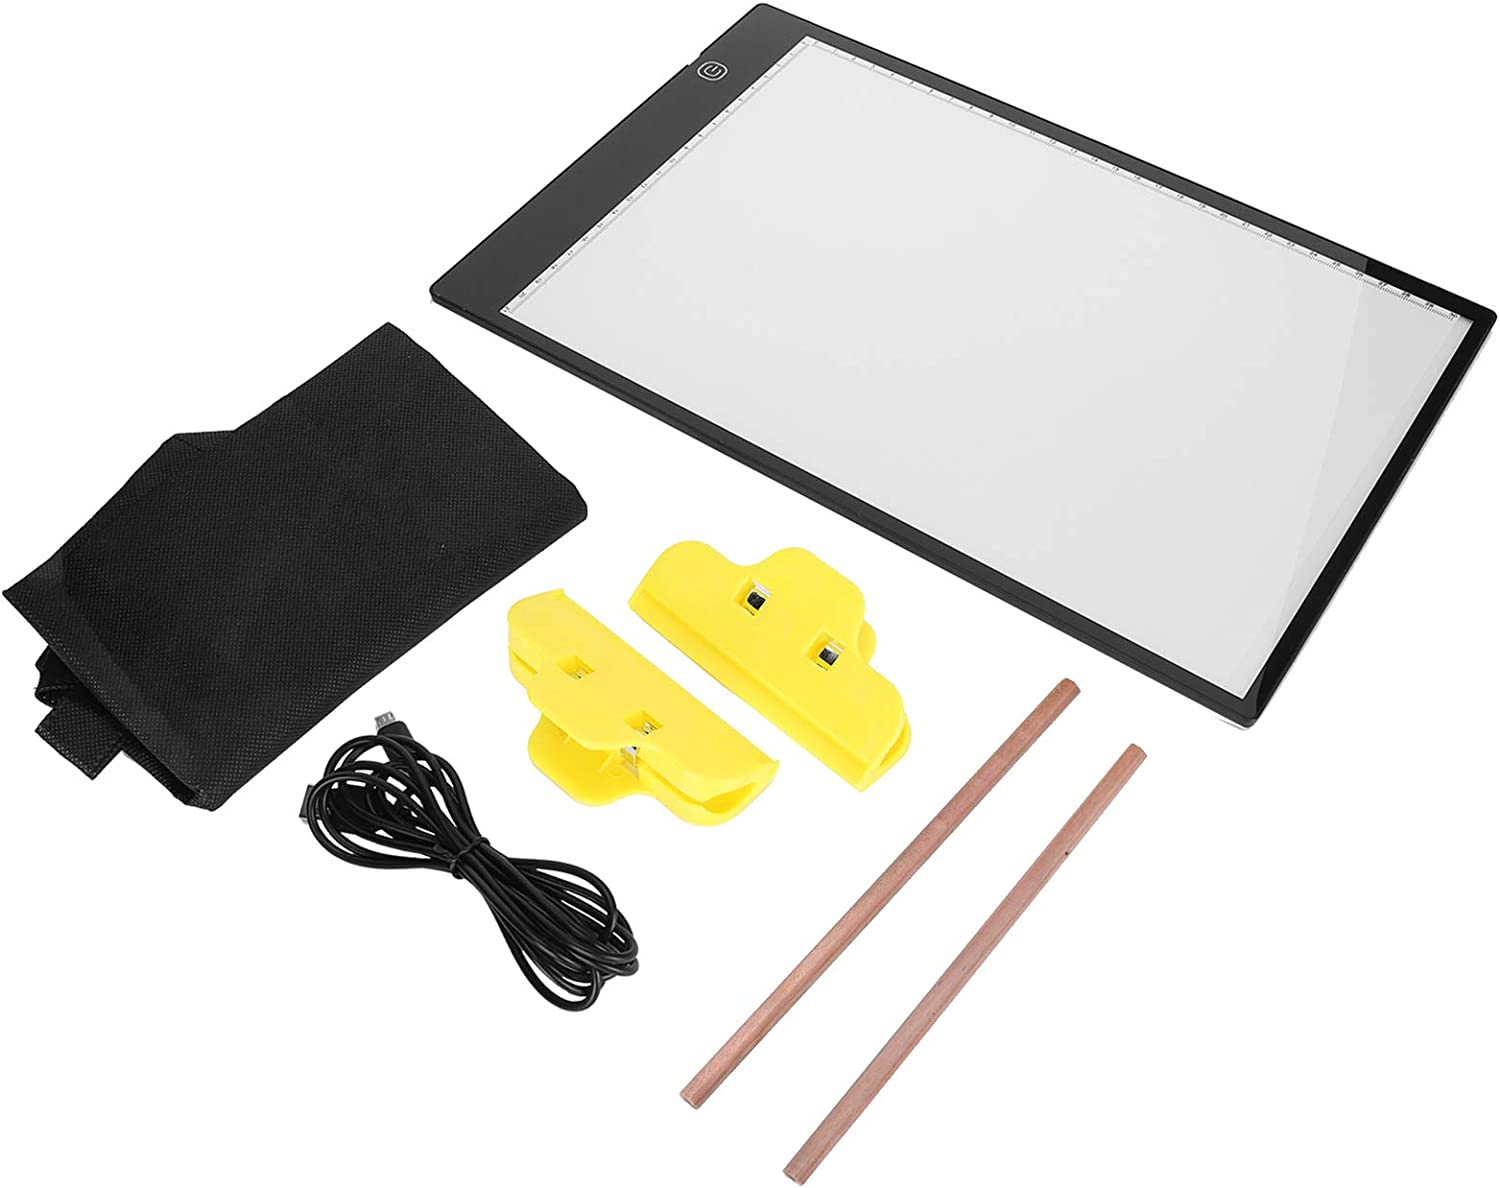 A4 Max latest 58% OFF LED Light Board Dimma Tracing High‑Brightness Adjustable